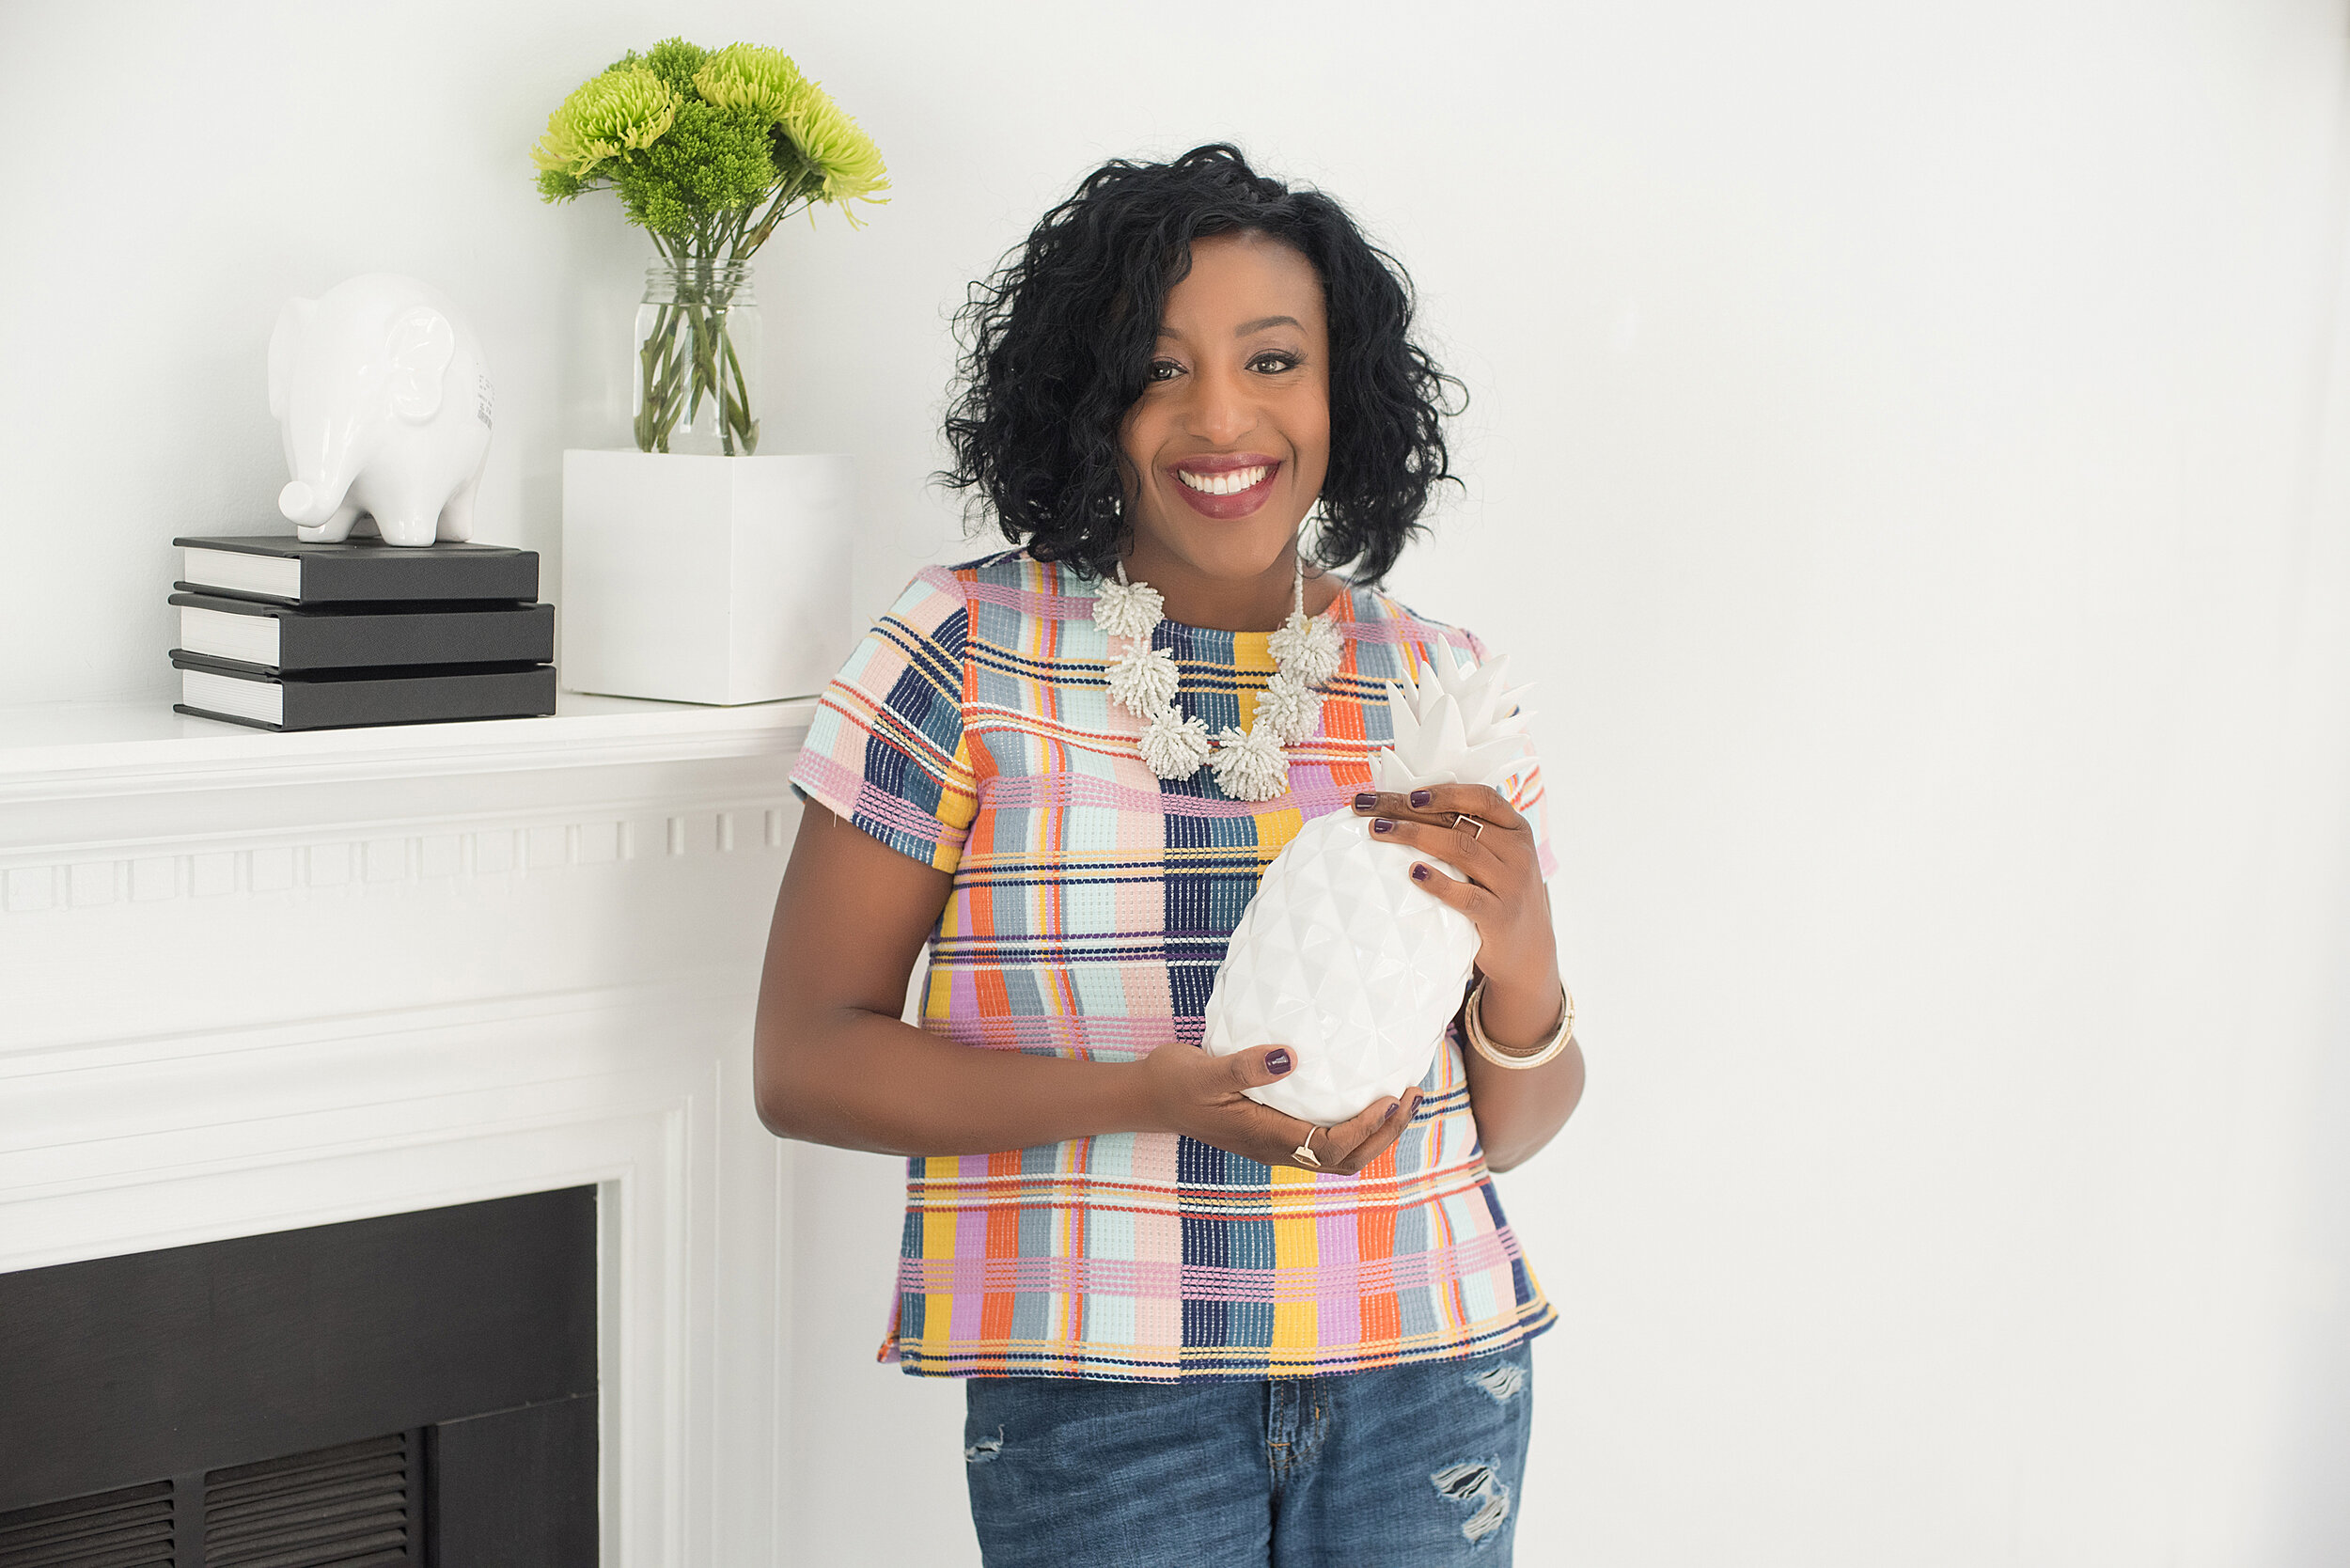 Hi I'm Dana, - I'm a full service interior designer, with a specialty in designing cohesive, well styled, realistic spaces for busy moms who want to bring beauty into their homes. As a mom of 3, I know how much you give your families everyday. You deserve a home that delivers a sense of calm and sanctuary at the end of the day.I'd love to give that to you! Lets schedule a quick 20 minute chat to discuss your needs EMAIL ME!